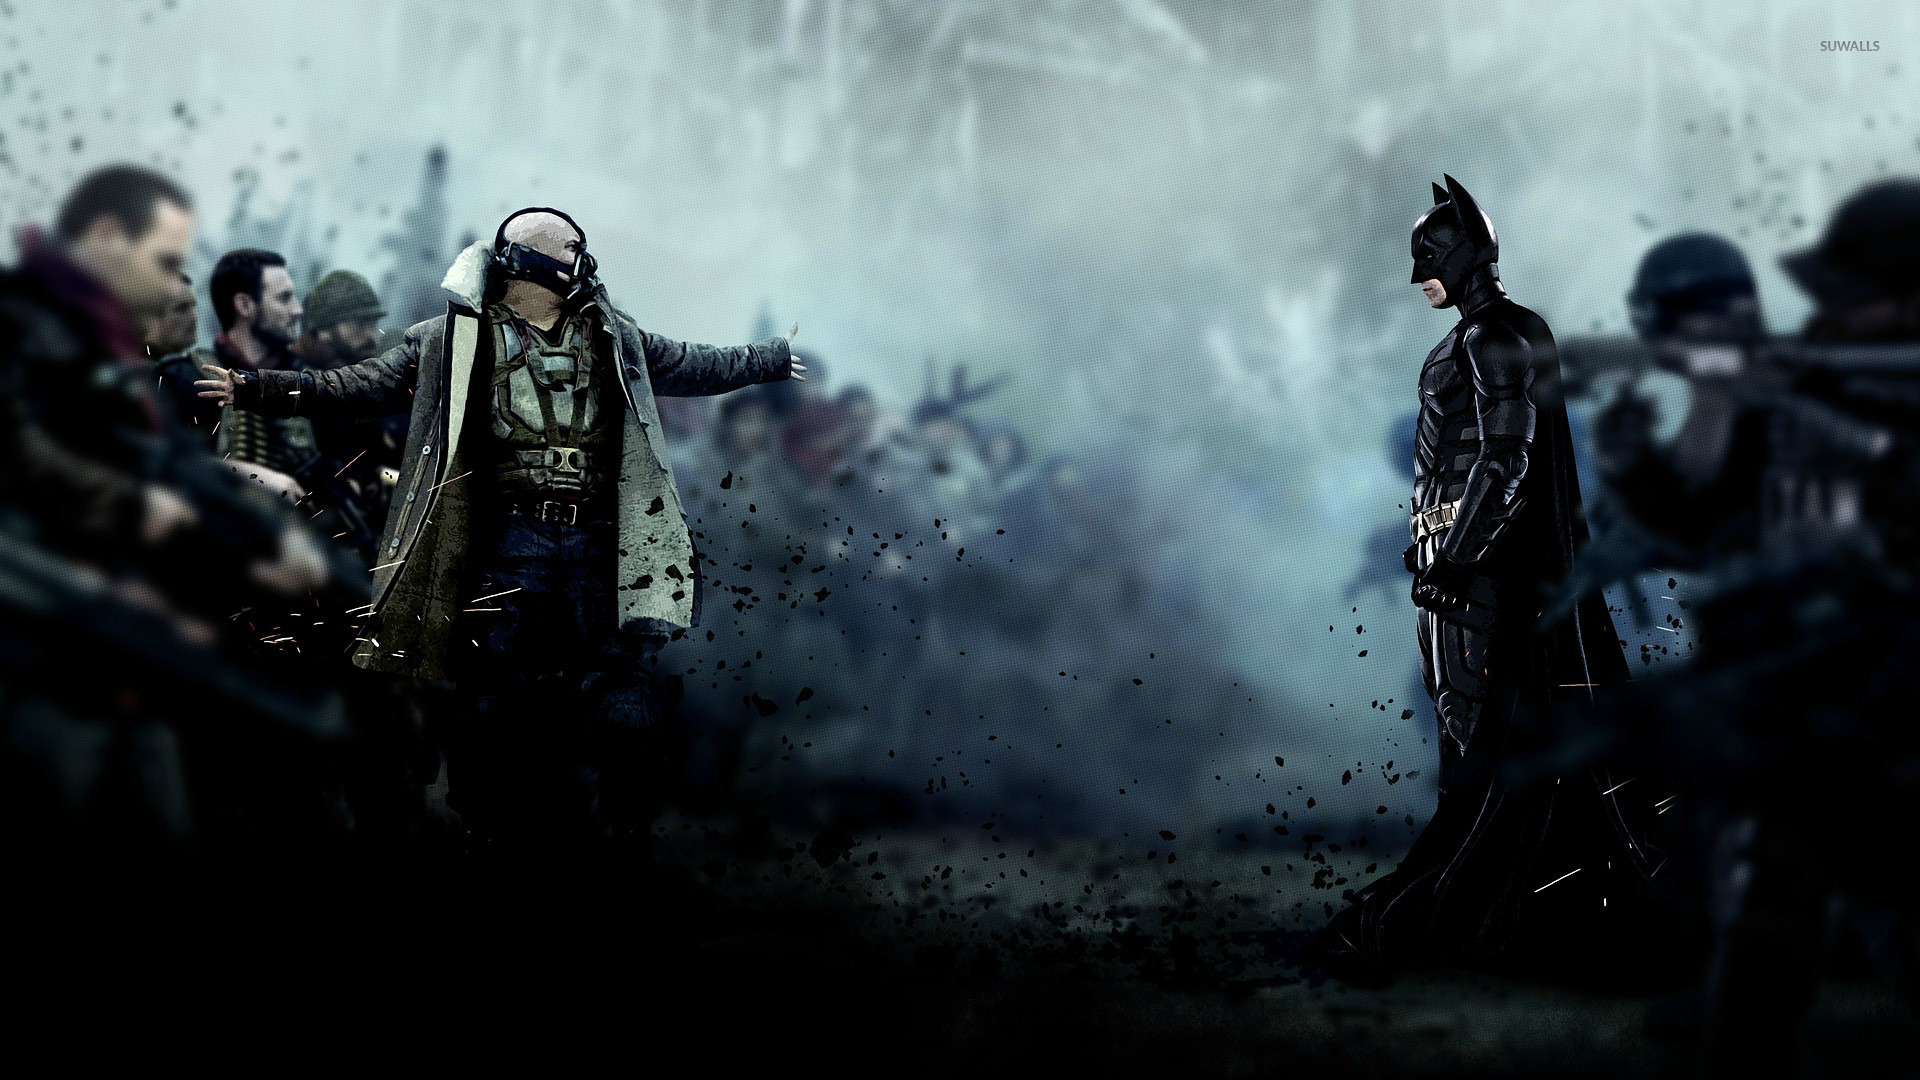 Bane And Batman The Dark Knight Rises Wallpaper Movie